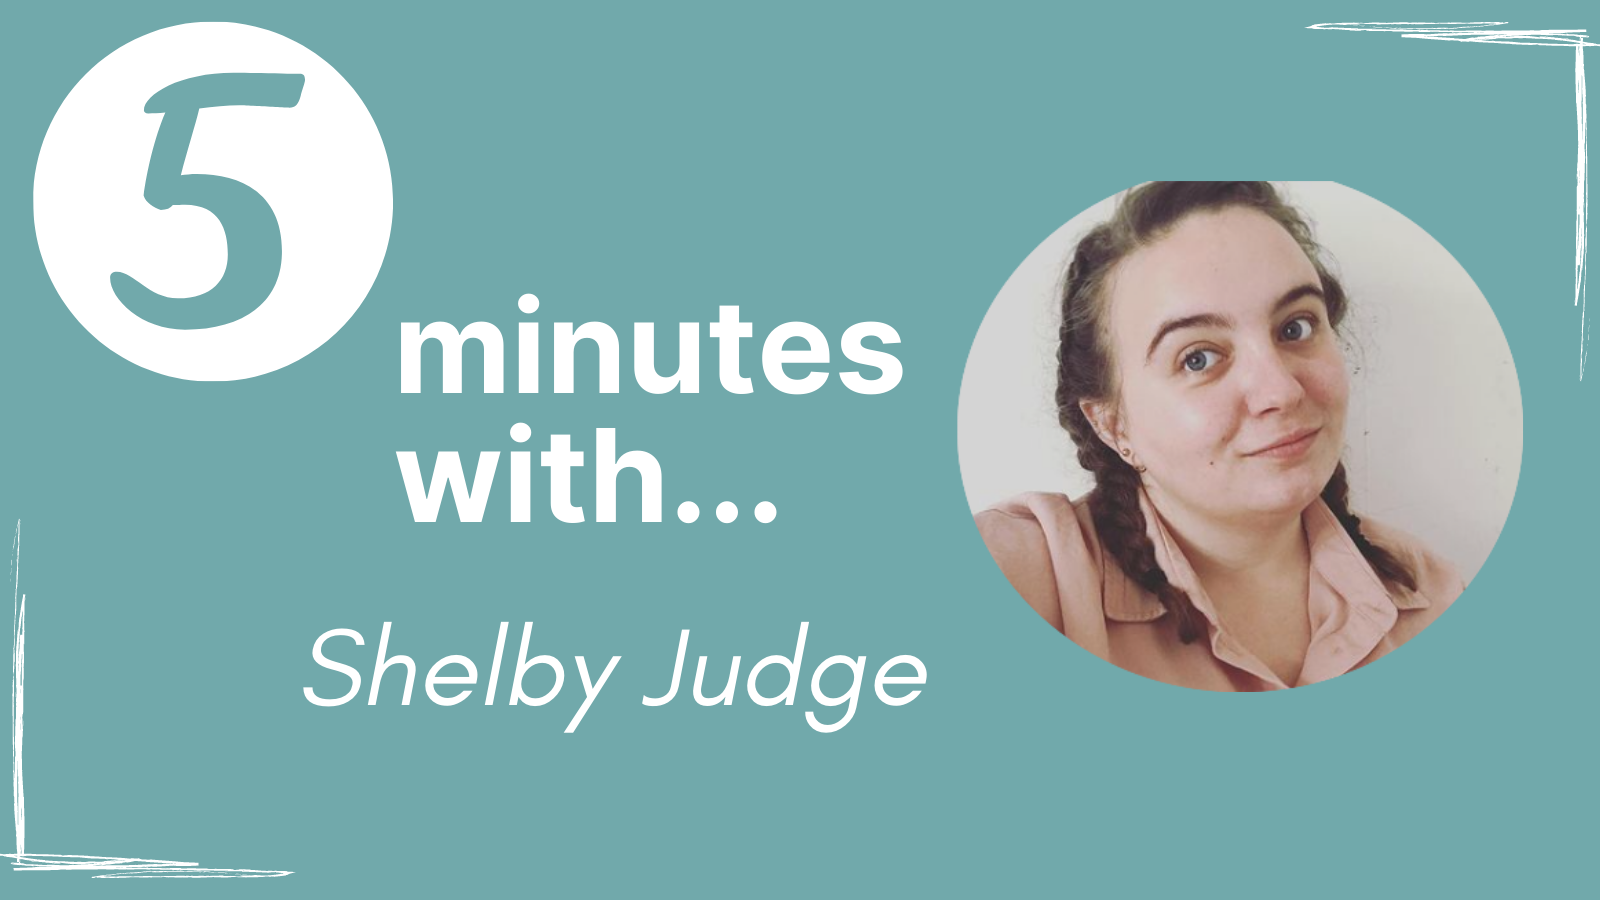 A promotional image for the '5 Minutes With' series that has a picture of Shelby Judge.